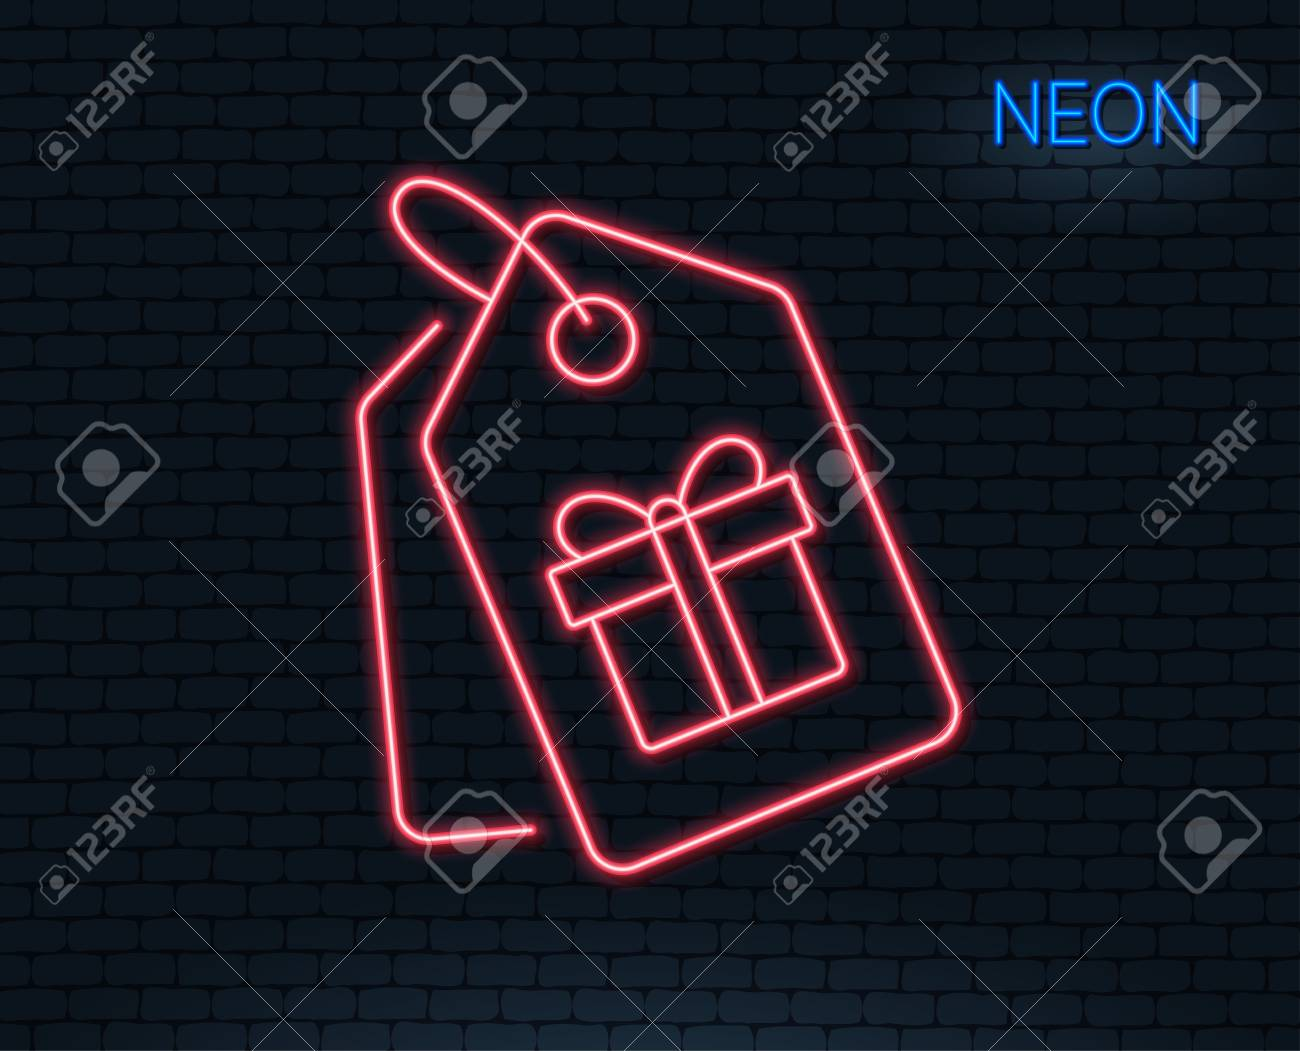 Everything neon coupon